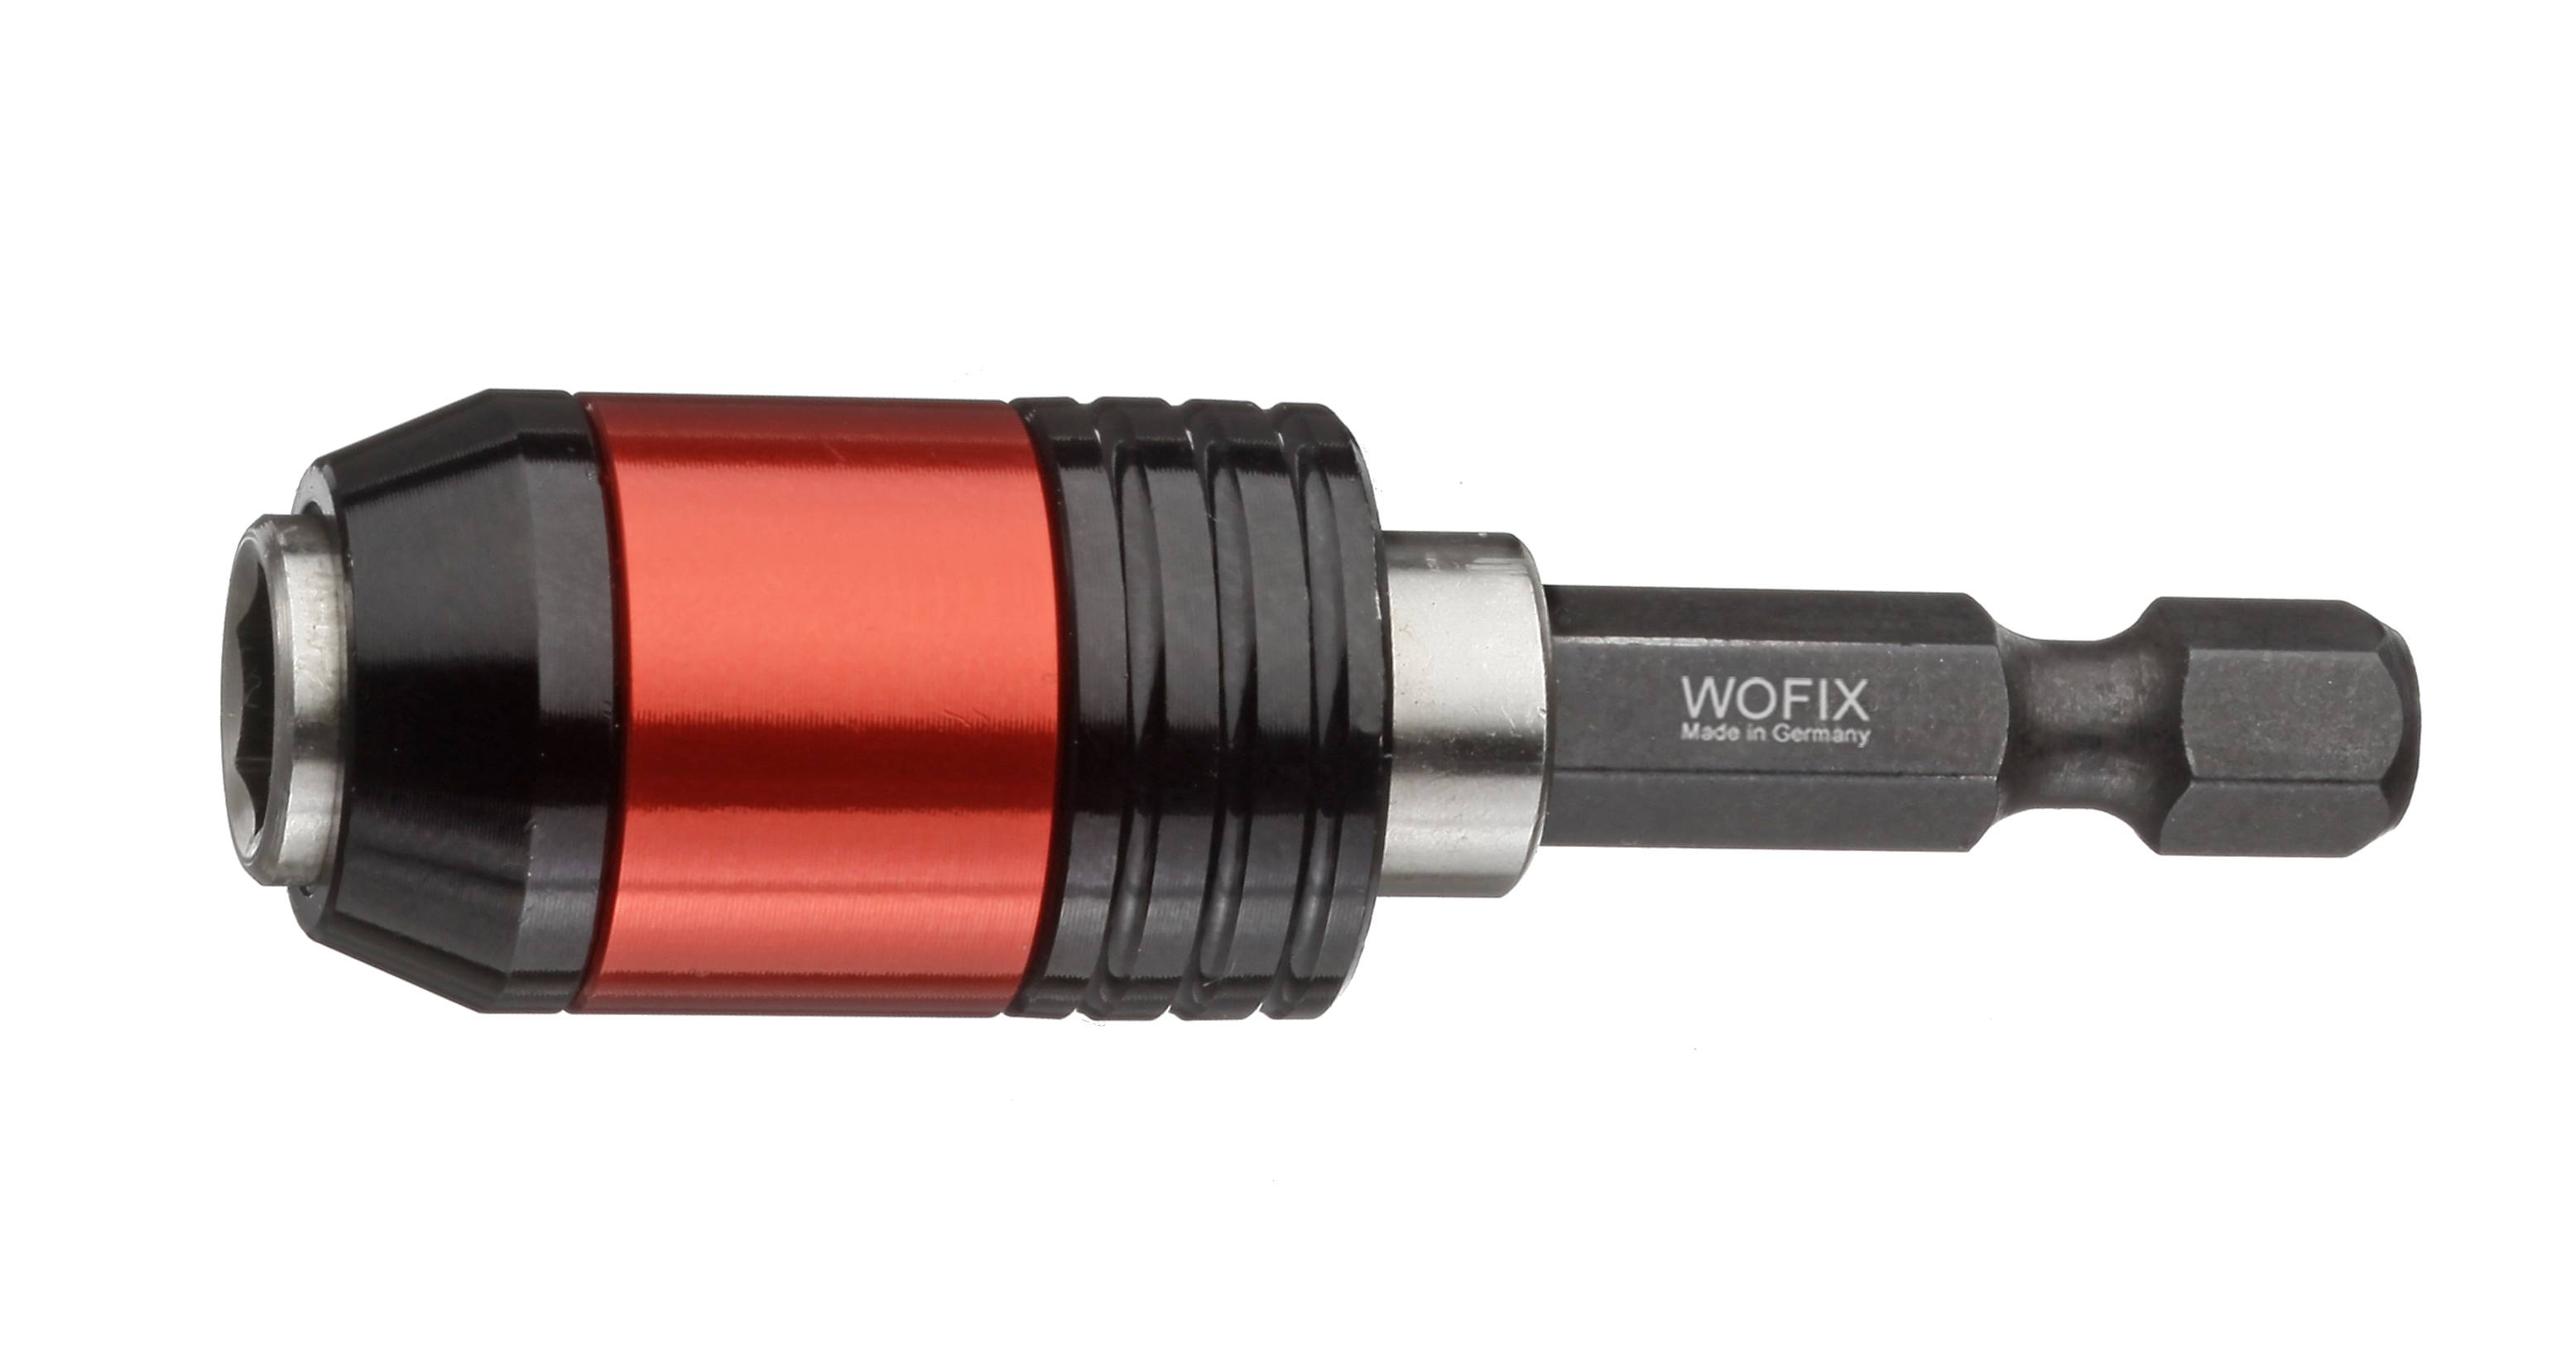 Wofix 7360009 Universele Bithouder magnetisch click-lock and ejection functie 60mm